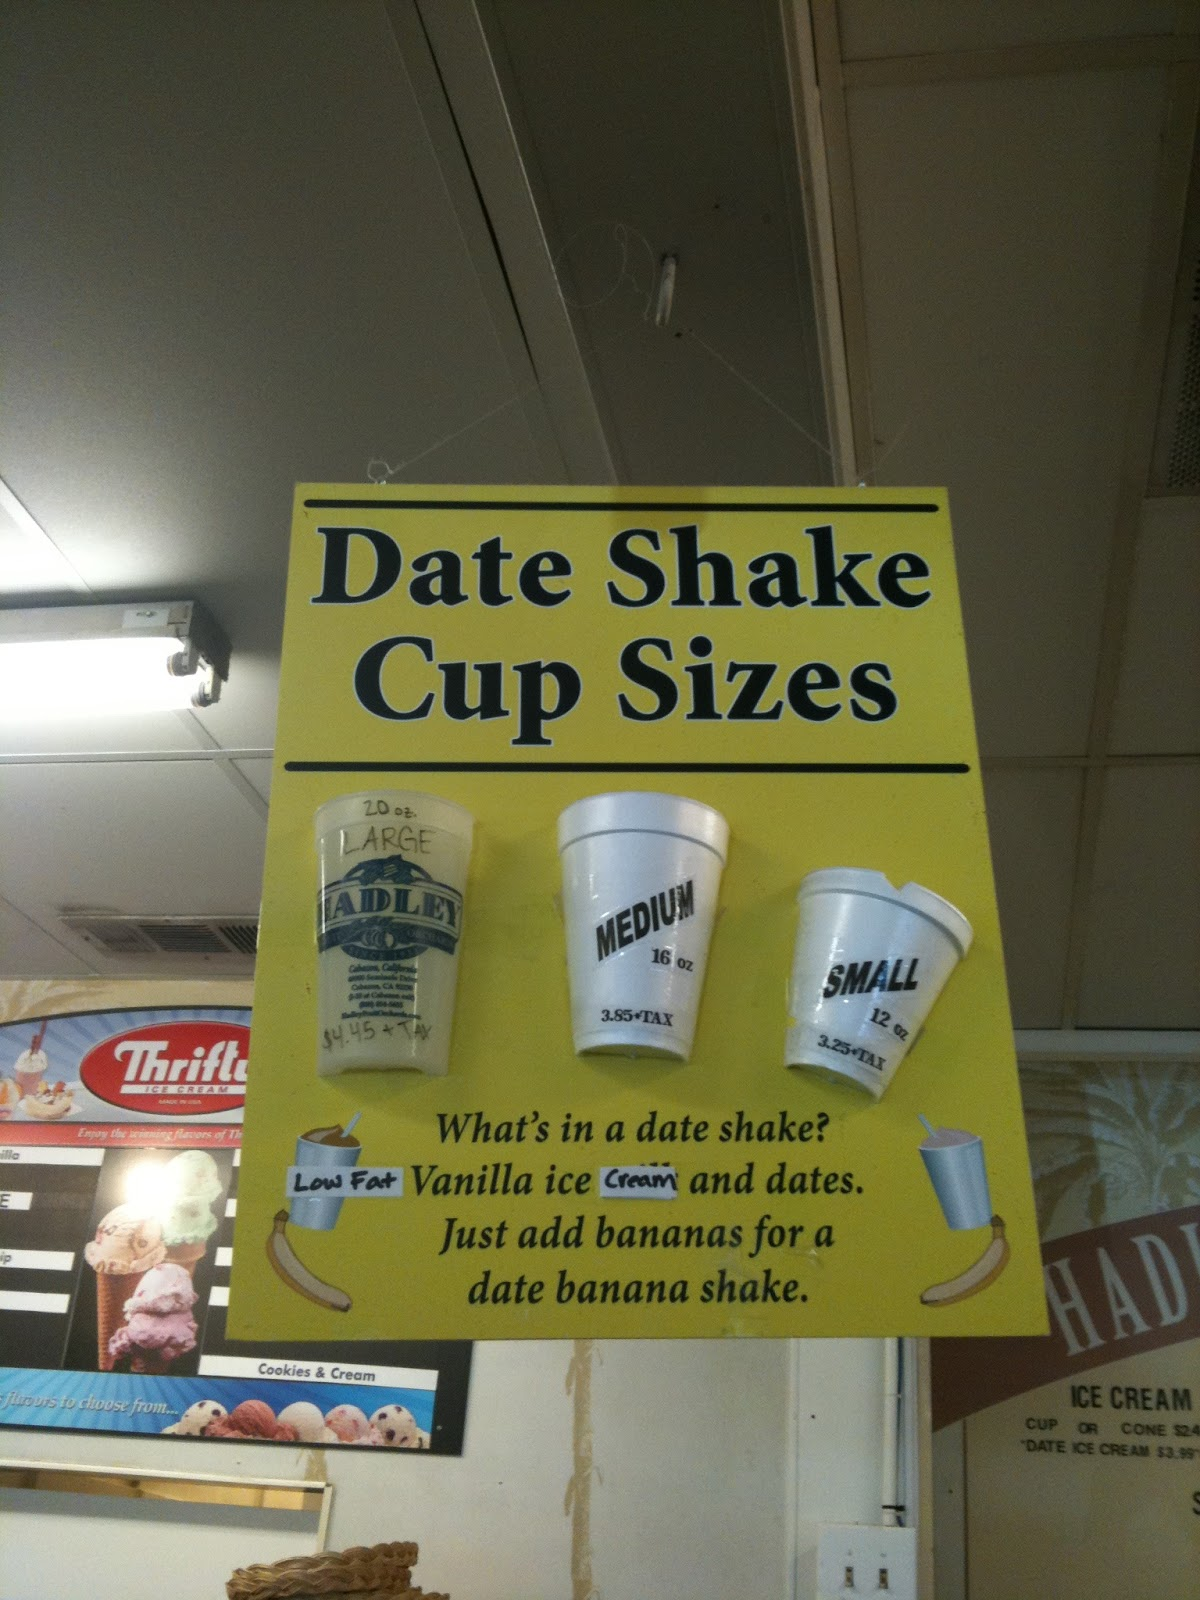 What is a date shake